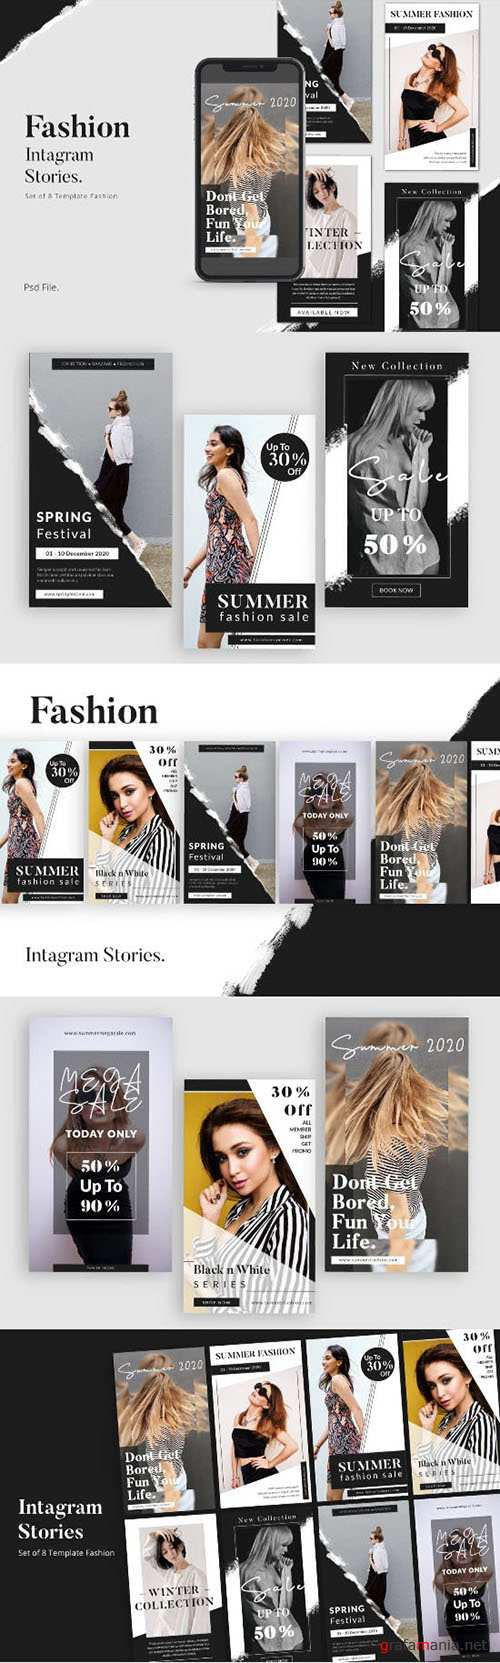 Fashion Social Media Instagram Stories Template PSD